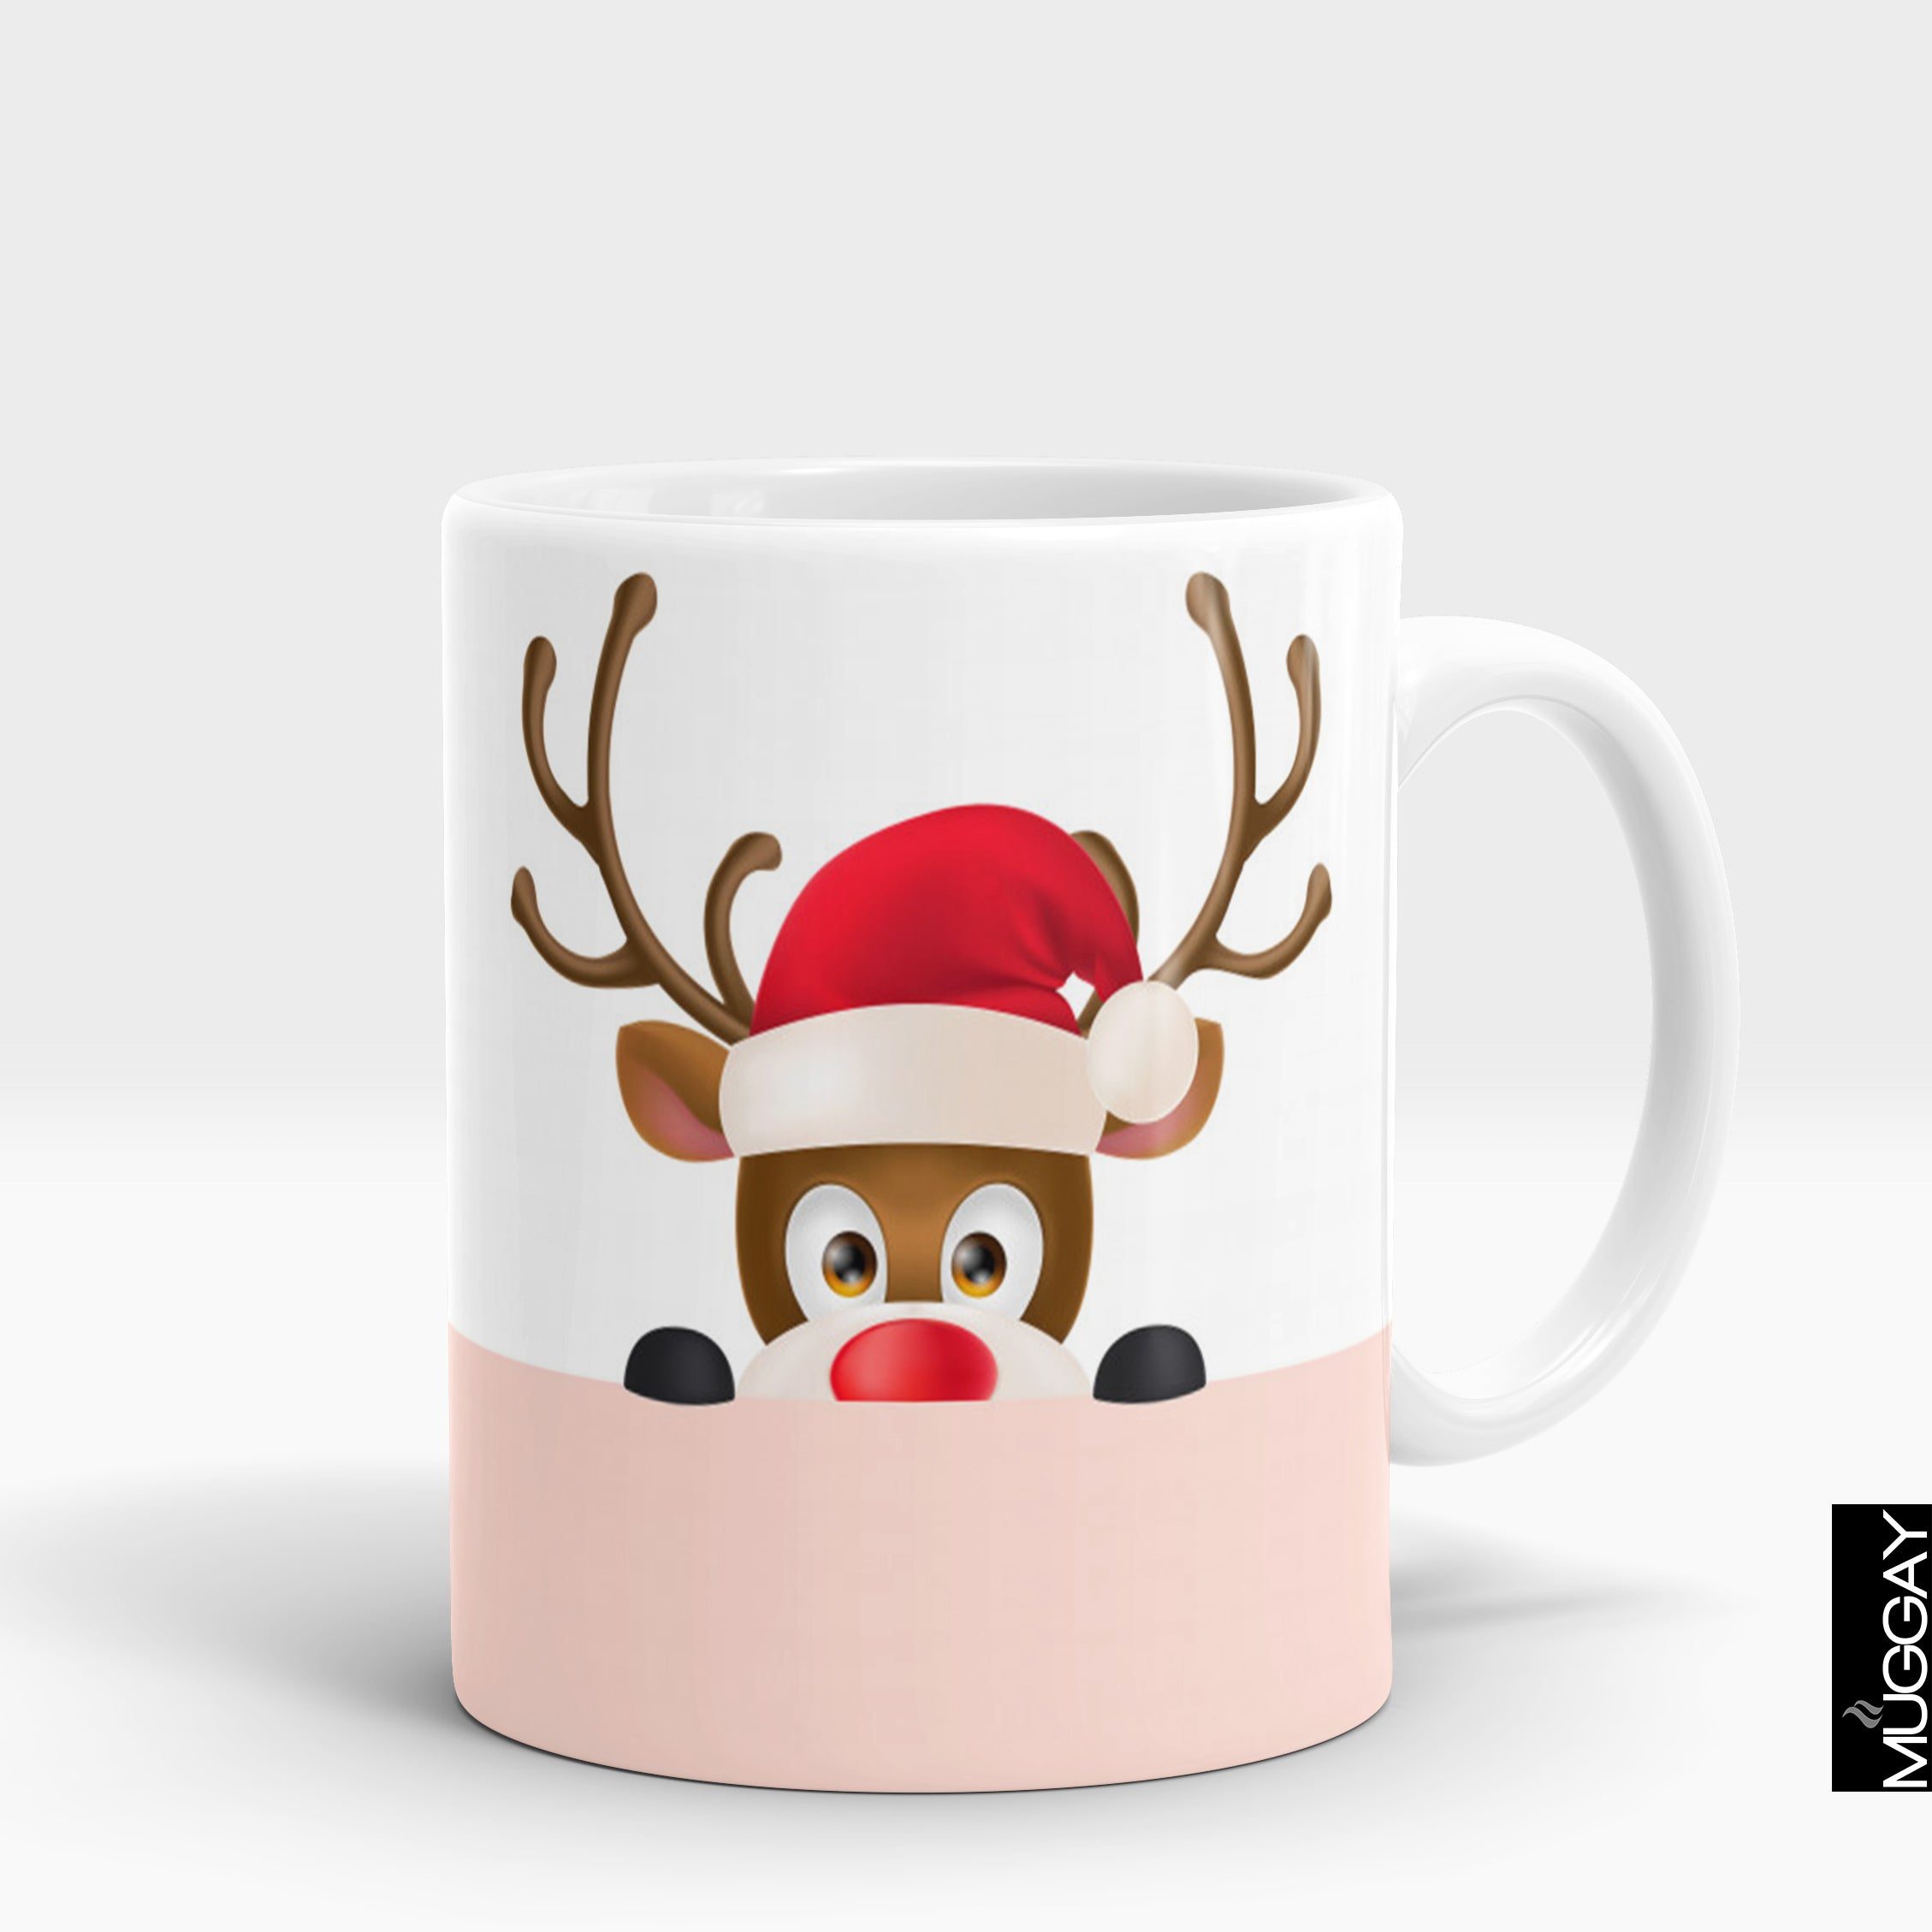 Christmas Day - Muggay.com - Mugs - Printing shop - truck Art mugs - Mug printing - Customized printing - Digital printing - Muggay